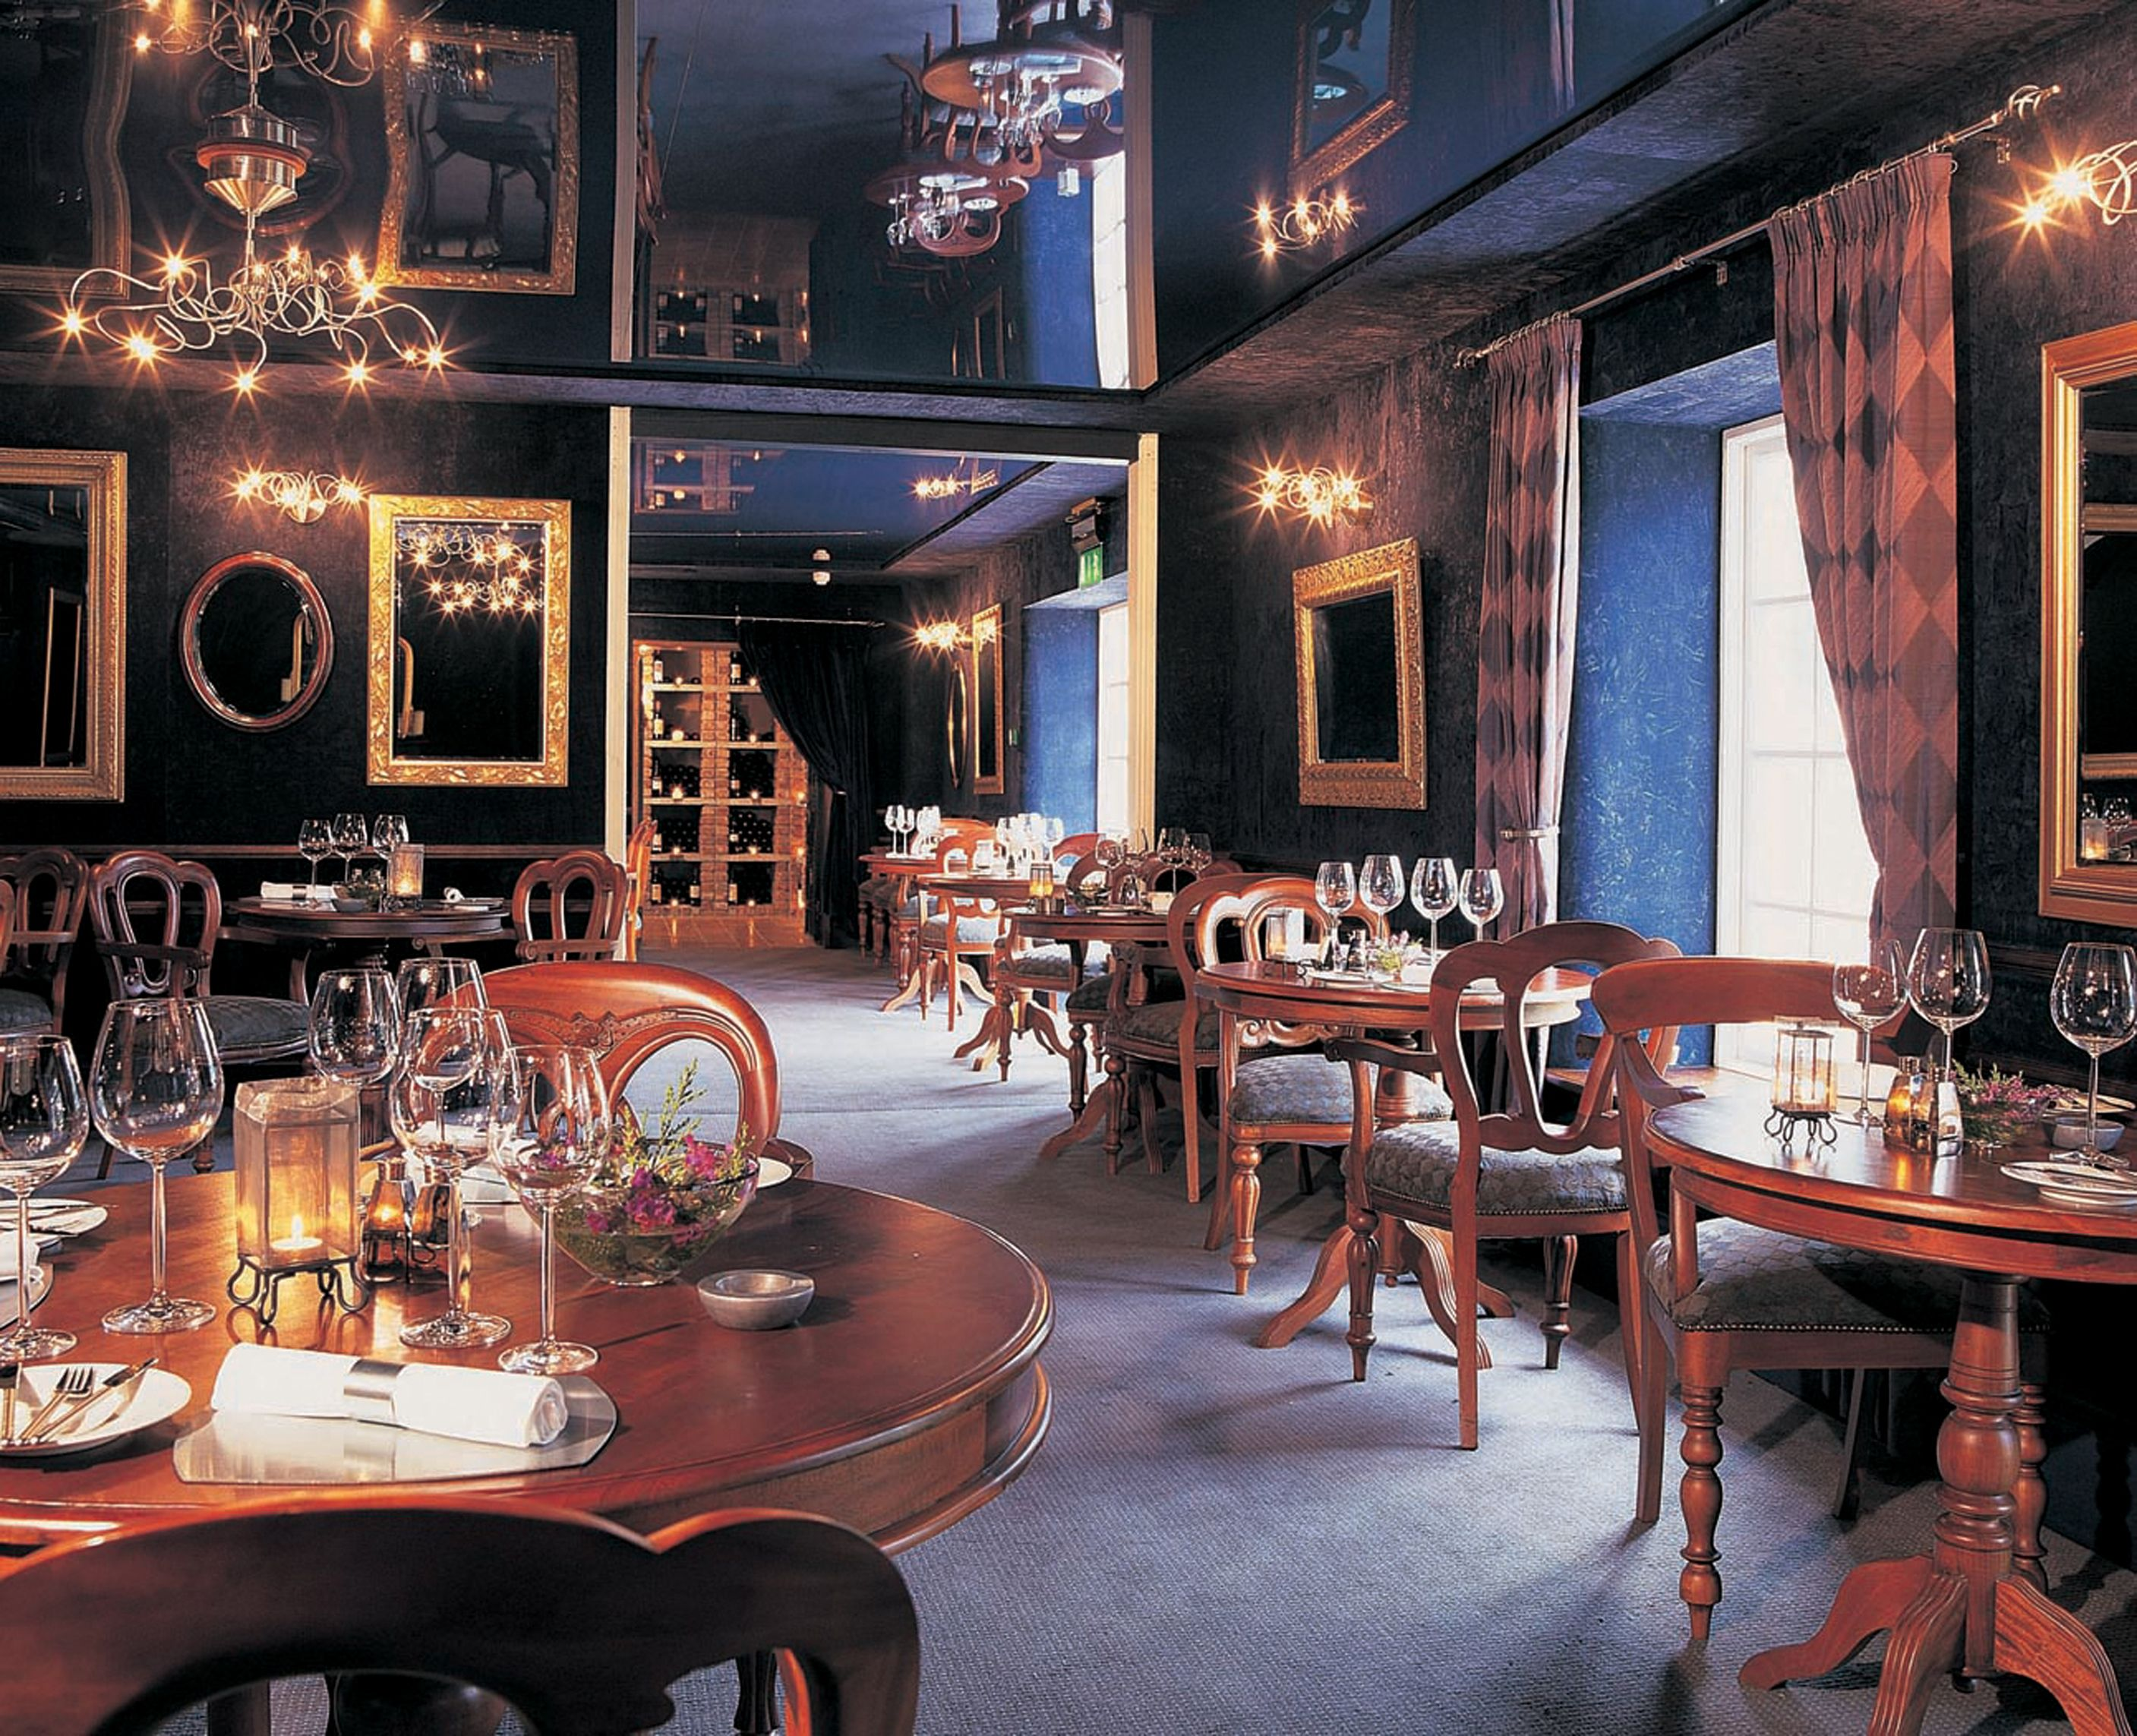 The Multi Award Winning Strawberry Tree Restaurant Is Ireland S First Certified Organic Restaurant Diners At The Strawberry Tree Have The Option O In 2020 Unique Hotels